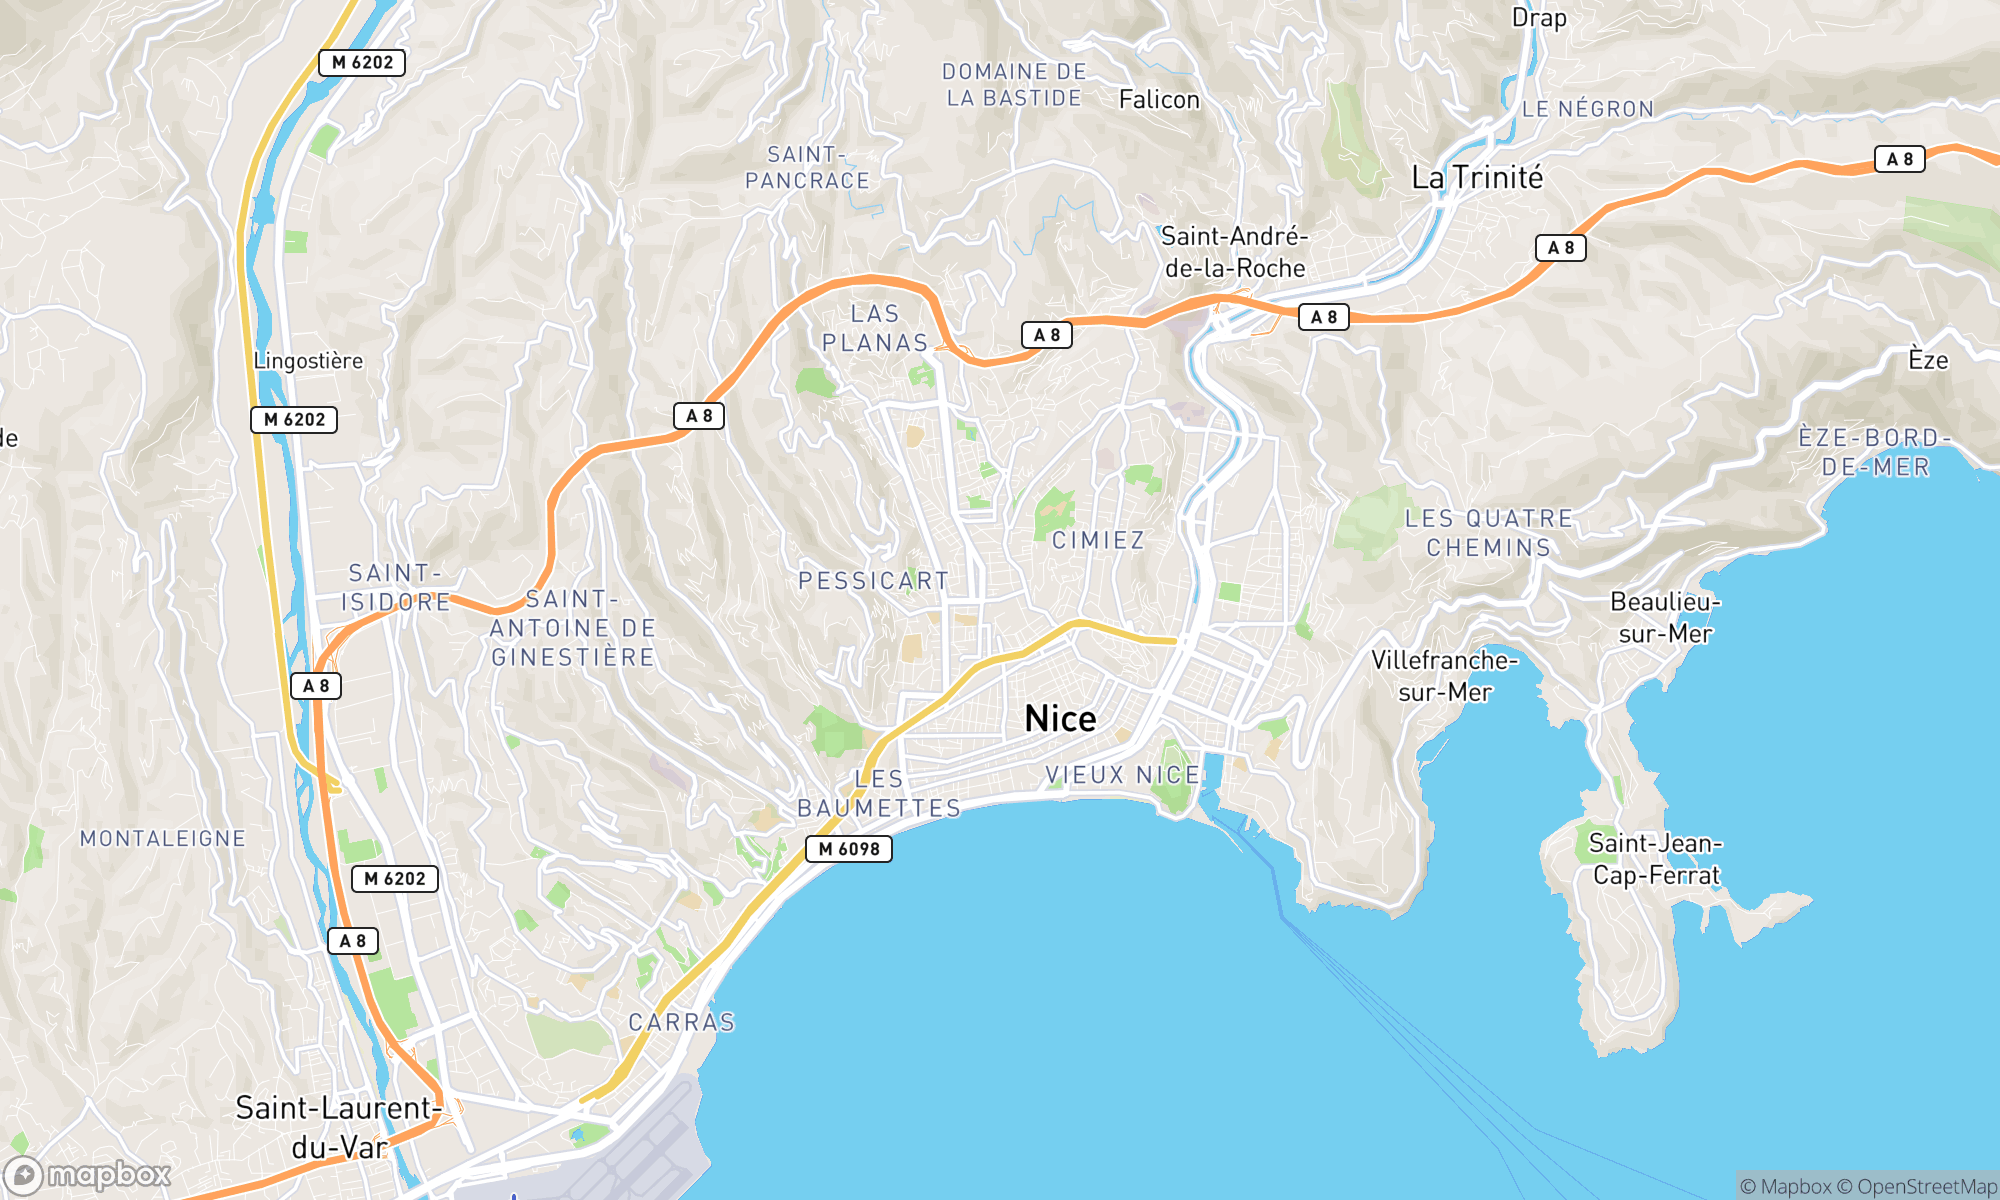 Map of Nice area